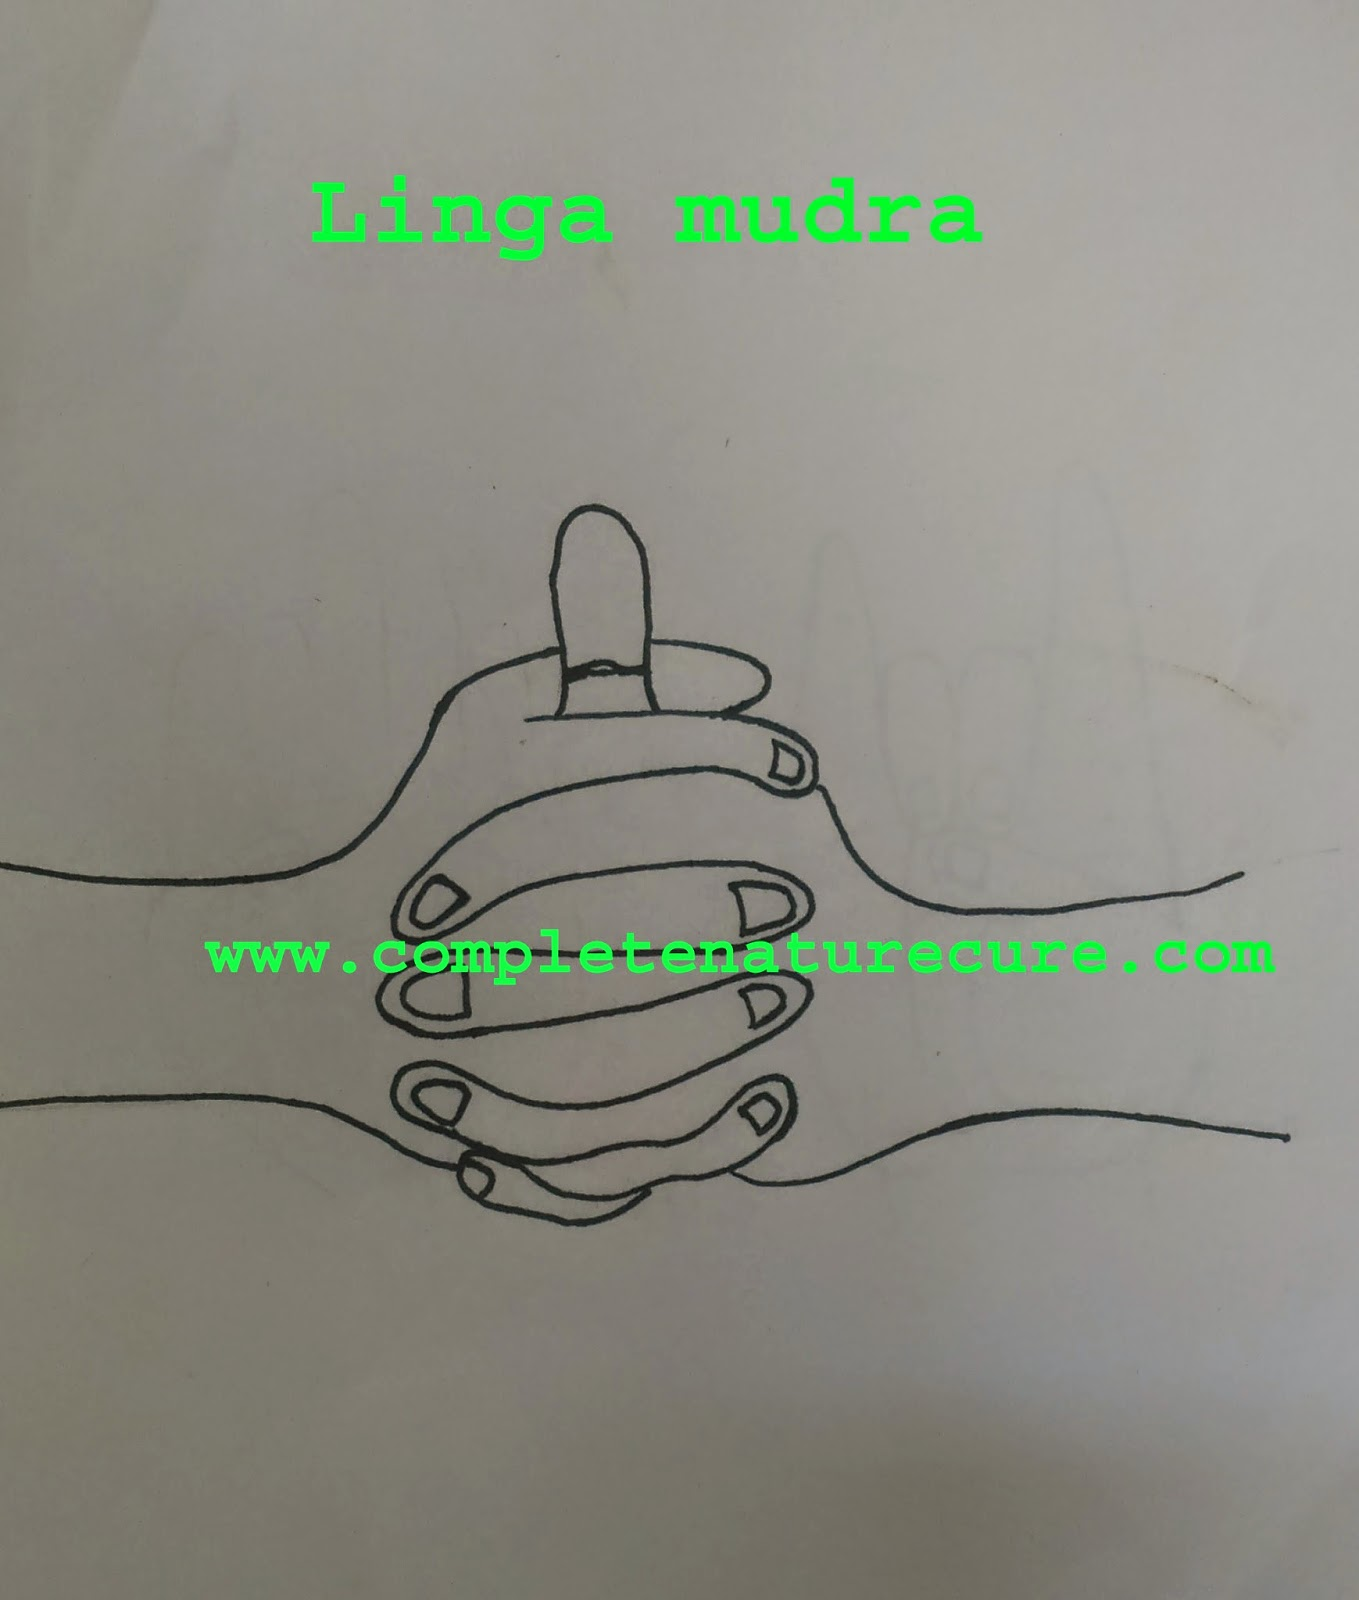 Linga mudra and its benefits